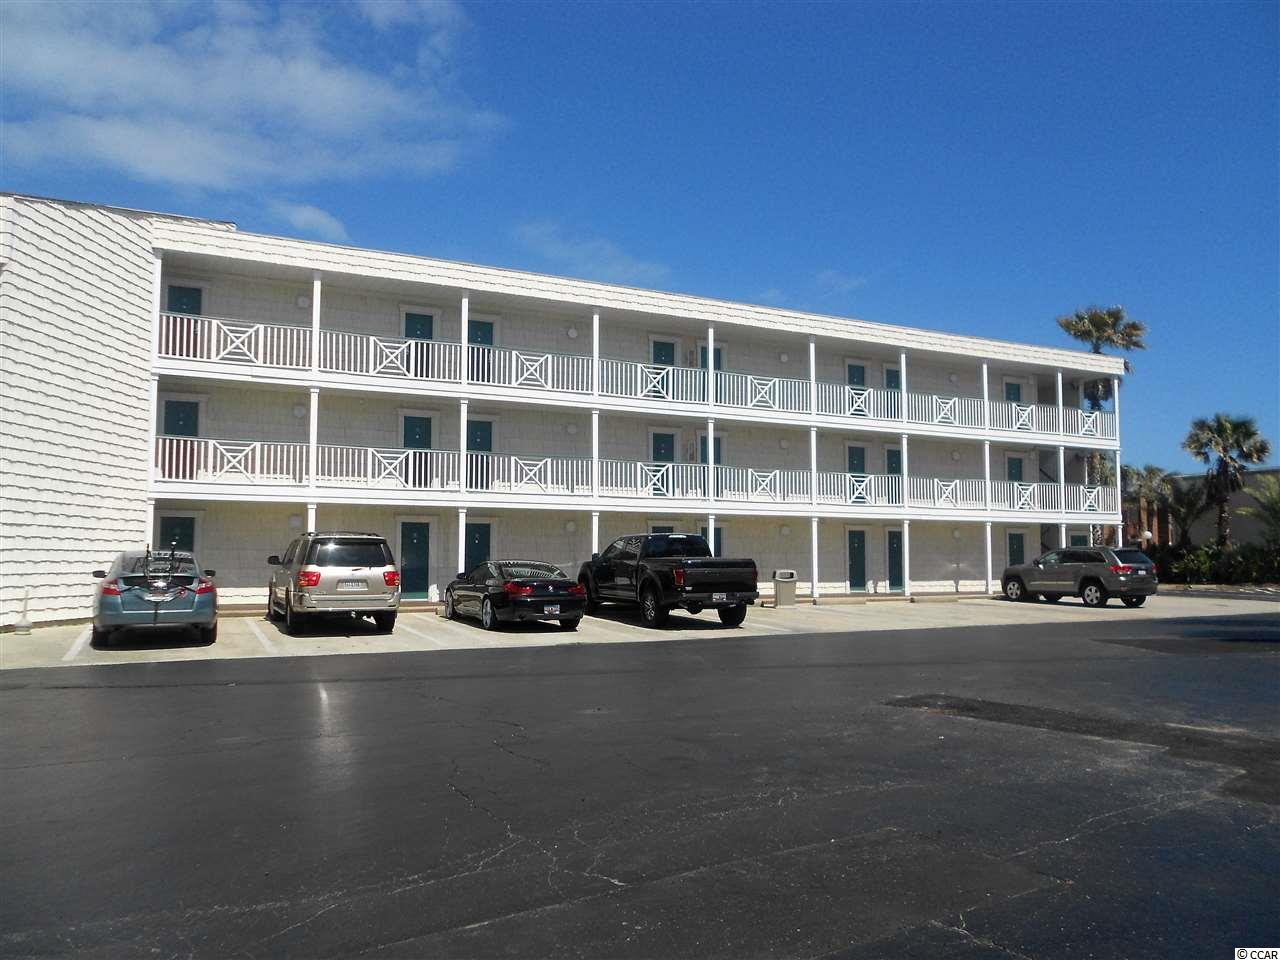 Condo in Litchfield Inn : Pawleys Island South Carolina